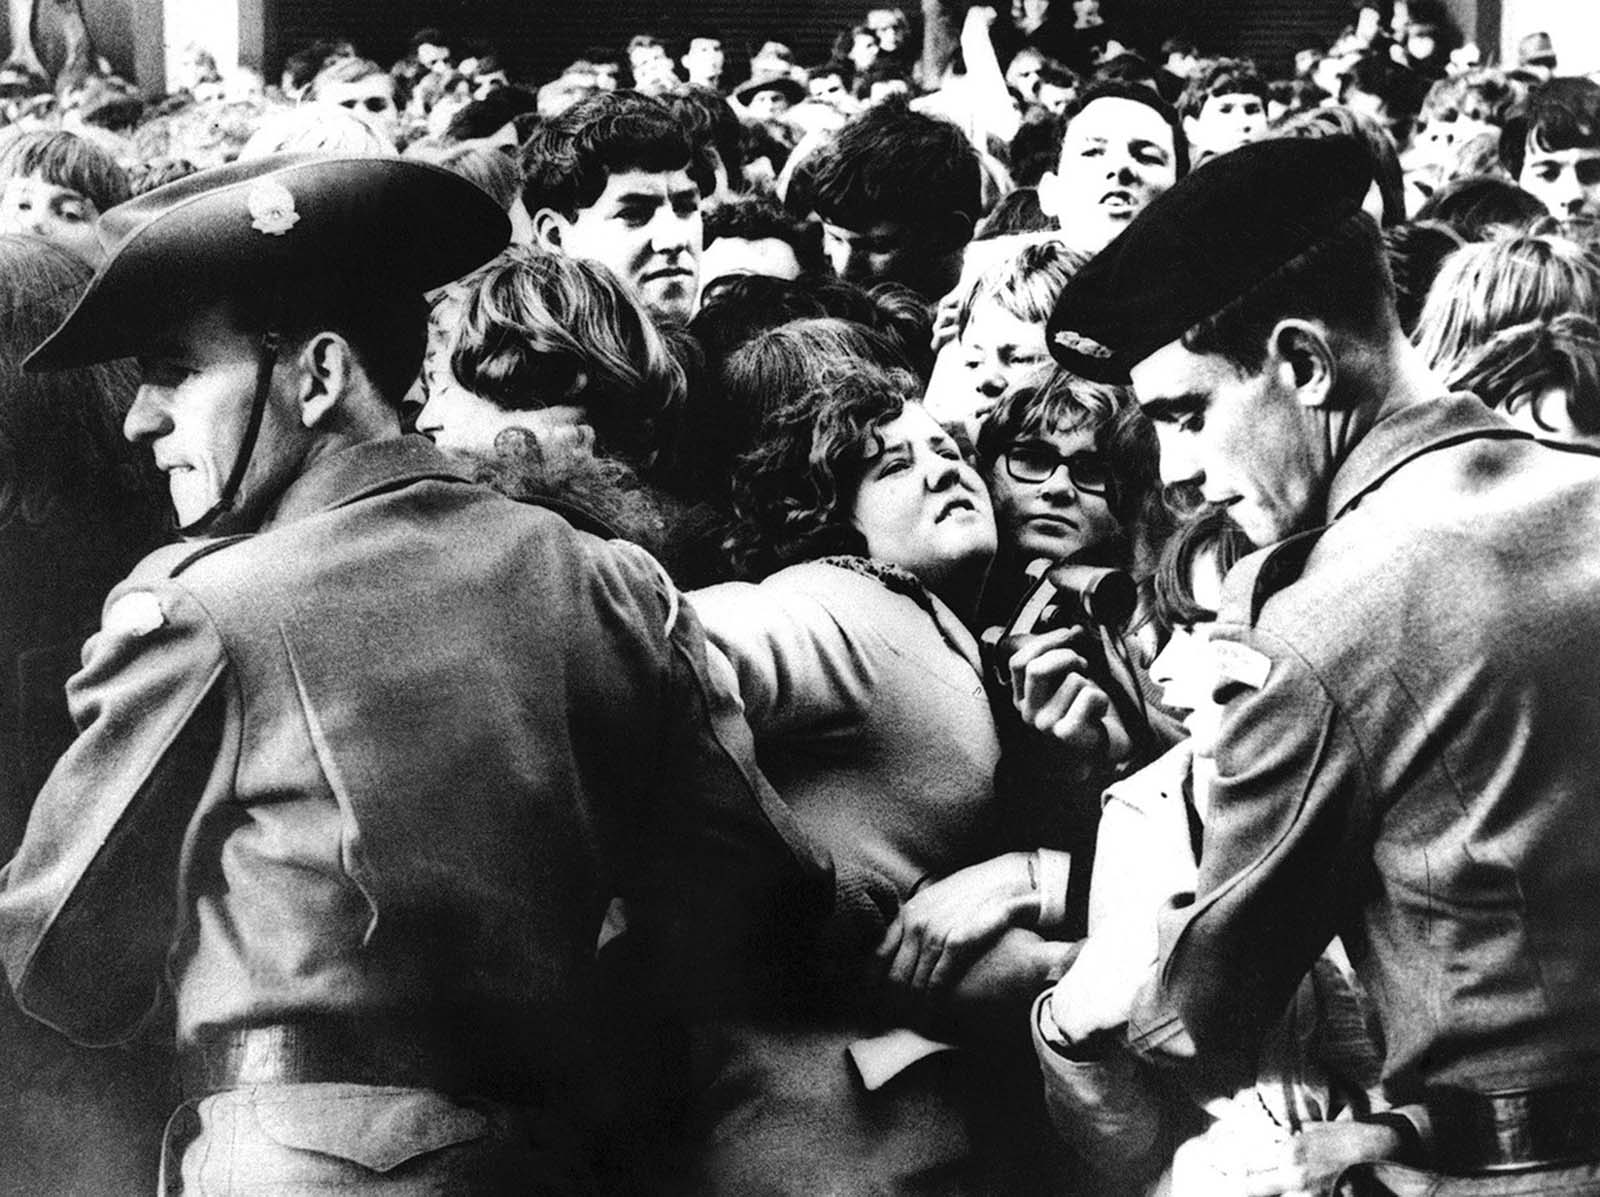 Two Australian soldiers link arms to control a section of the crowd outside the Southern Cross Hotel in Melbourne on the arrival of the Beatles, on June 14, 1964. Some 300 policemen and 100 soldiers made an attempt to contain 10,000 screaming fans and to keep open a passageway for the singing group's cars. Like most of the barriers, this one was pushed aside at the height of the crush. The Beatles were eventually taken into the hotel through a back entrance.